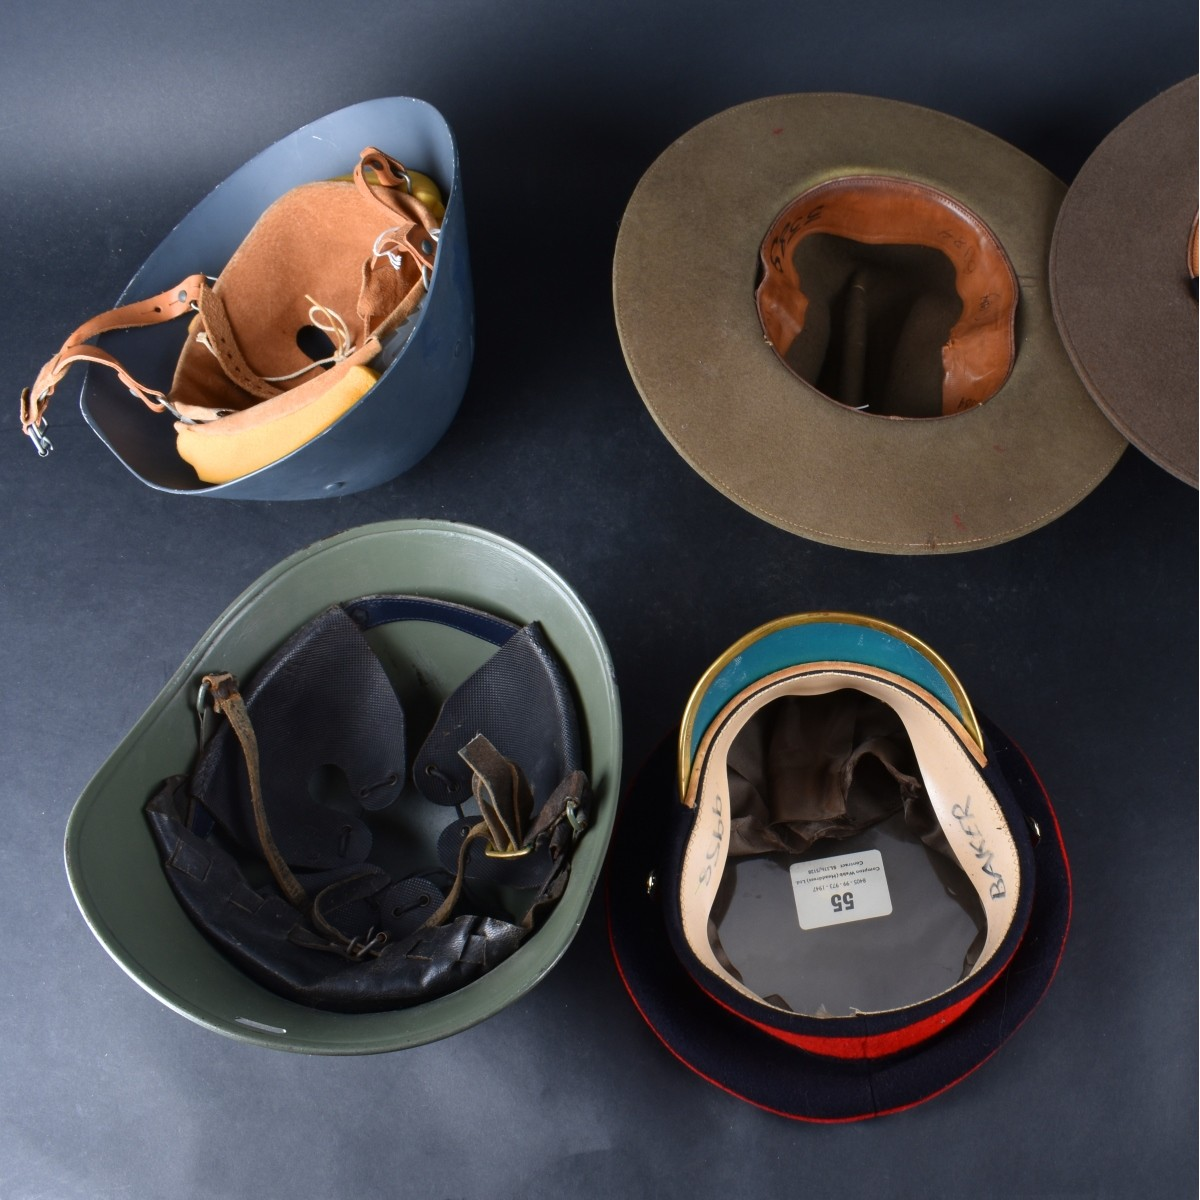 European Military Hats and Helmets